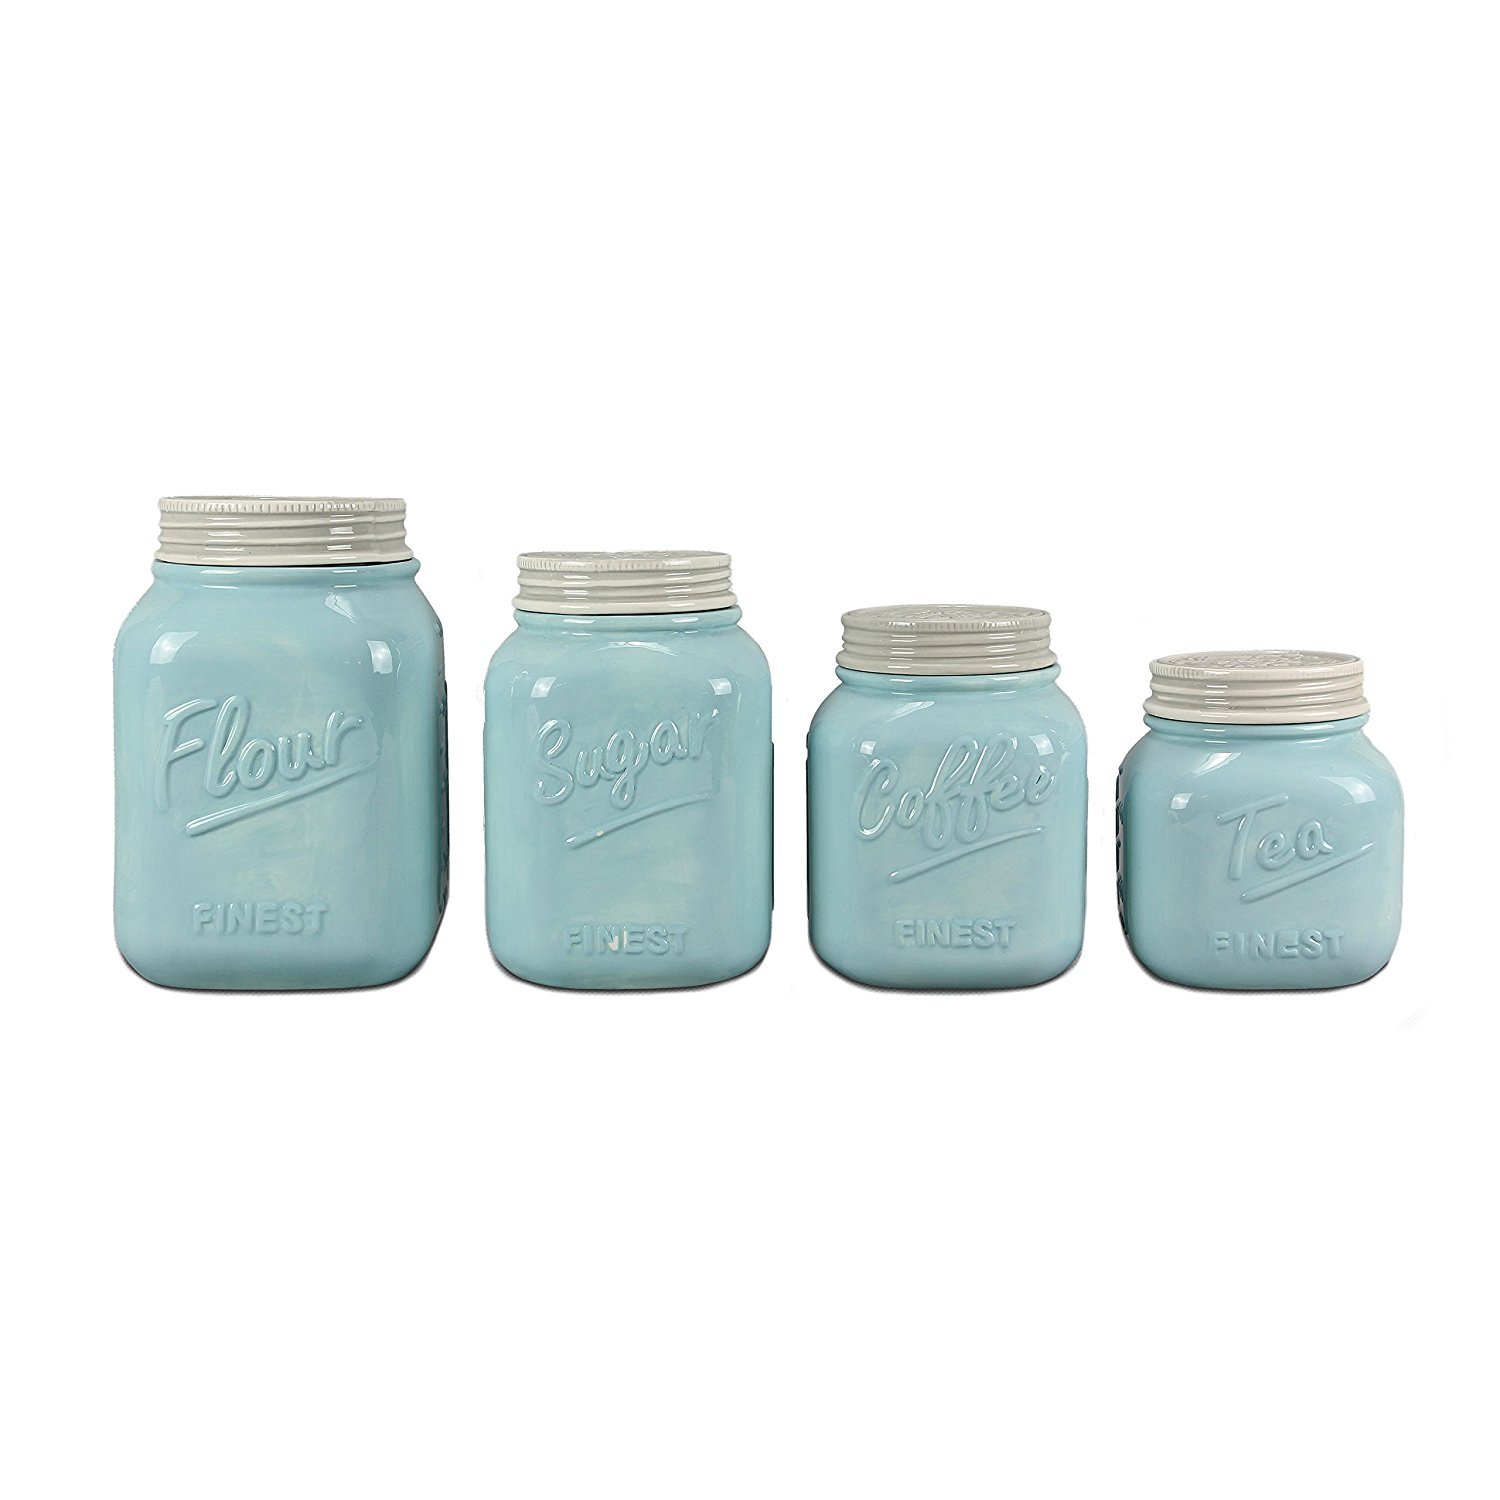 Young's Home Decor Ceramic Canister (Set of 4), 5.75-Inch x 10.75-Inch x 5.75-Inch Young' s Inc 15651